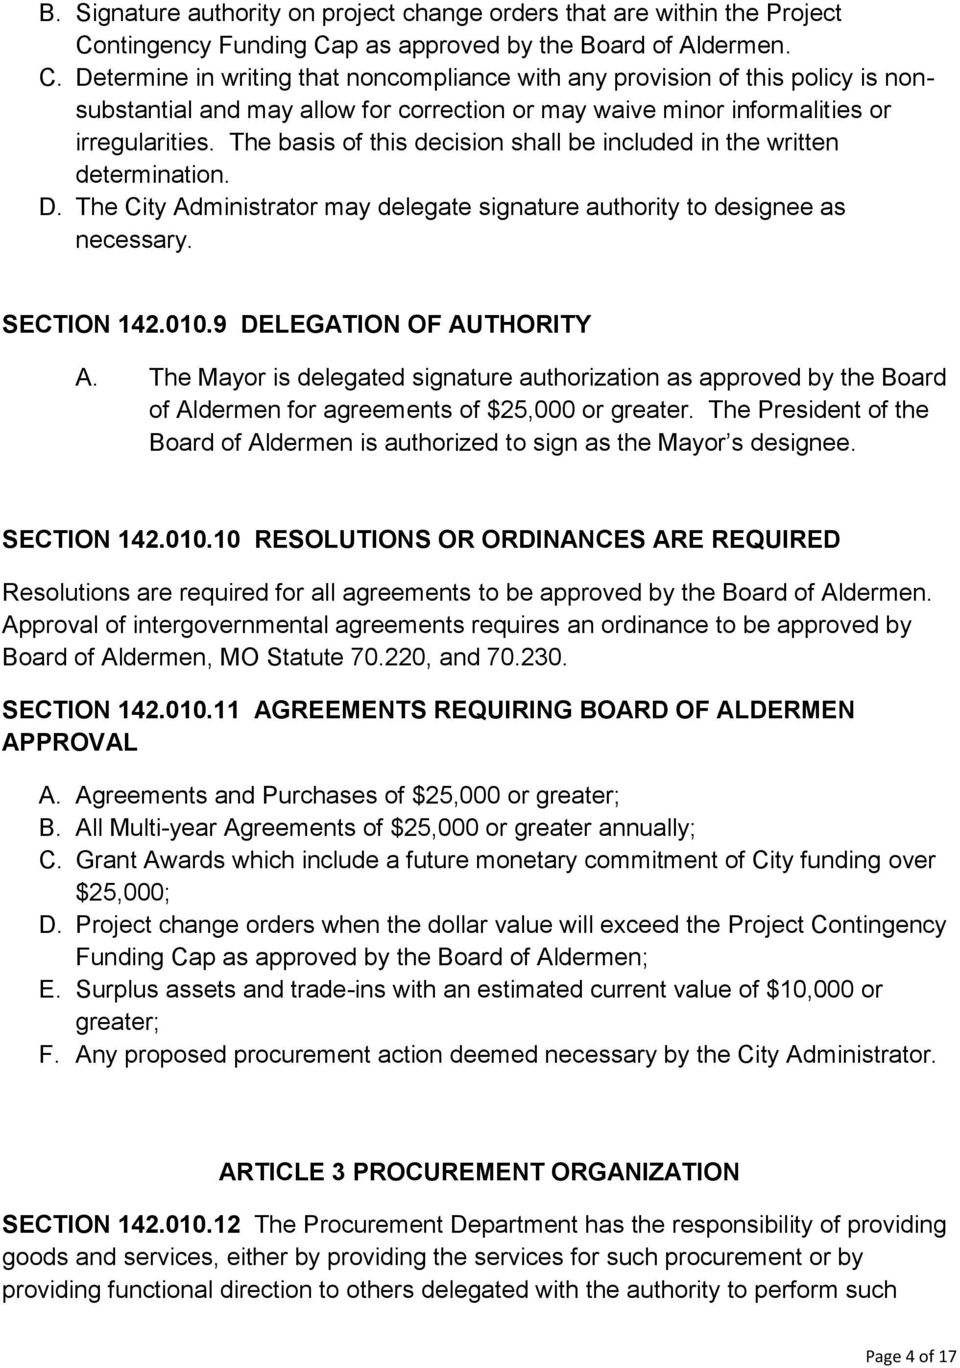 The basis of this decision shall be included in the written determination. D. The City Administrator may delegate signature authority to designee as necessary. SECTION 142.010.